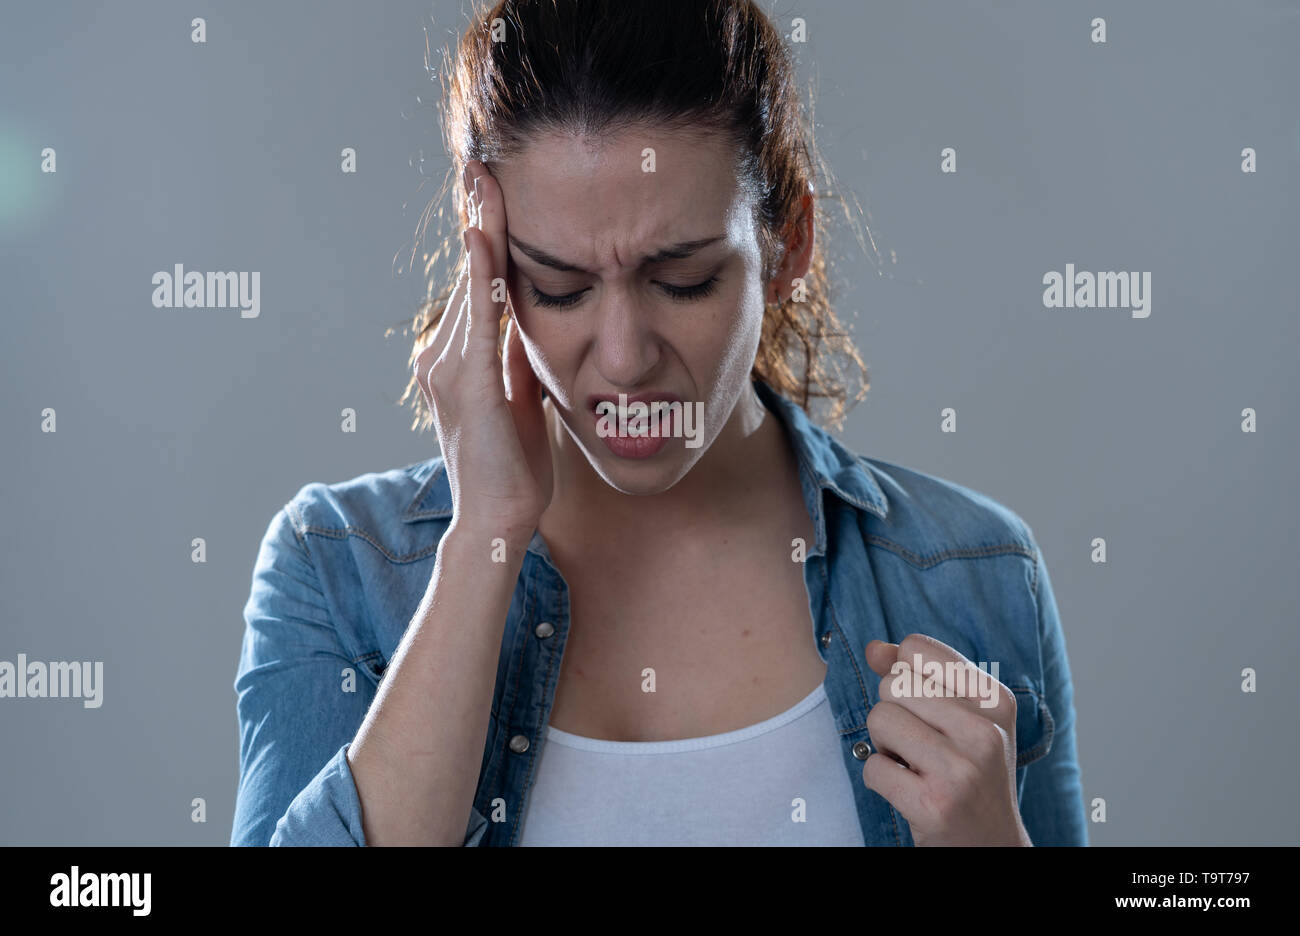 Close up portrait of a young woman looking worried and thoughtful suffering from migraines in great pain. Isolated on neutral background. In facial ex - Stock Image